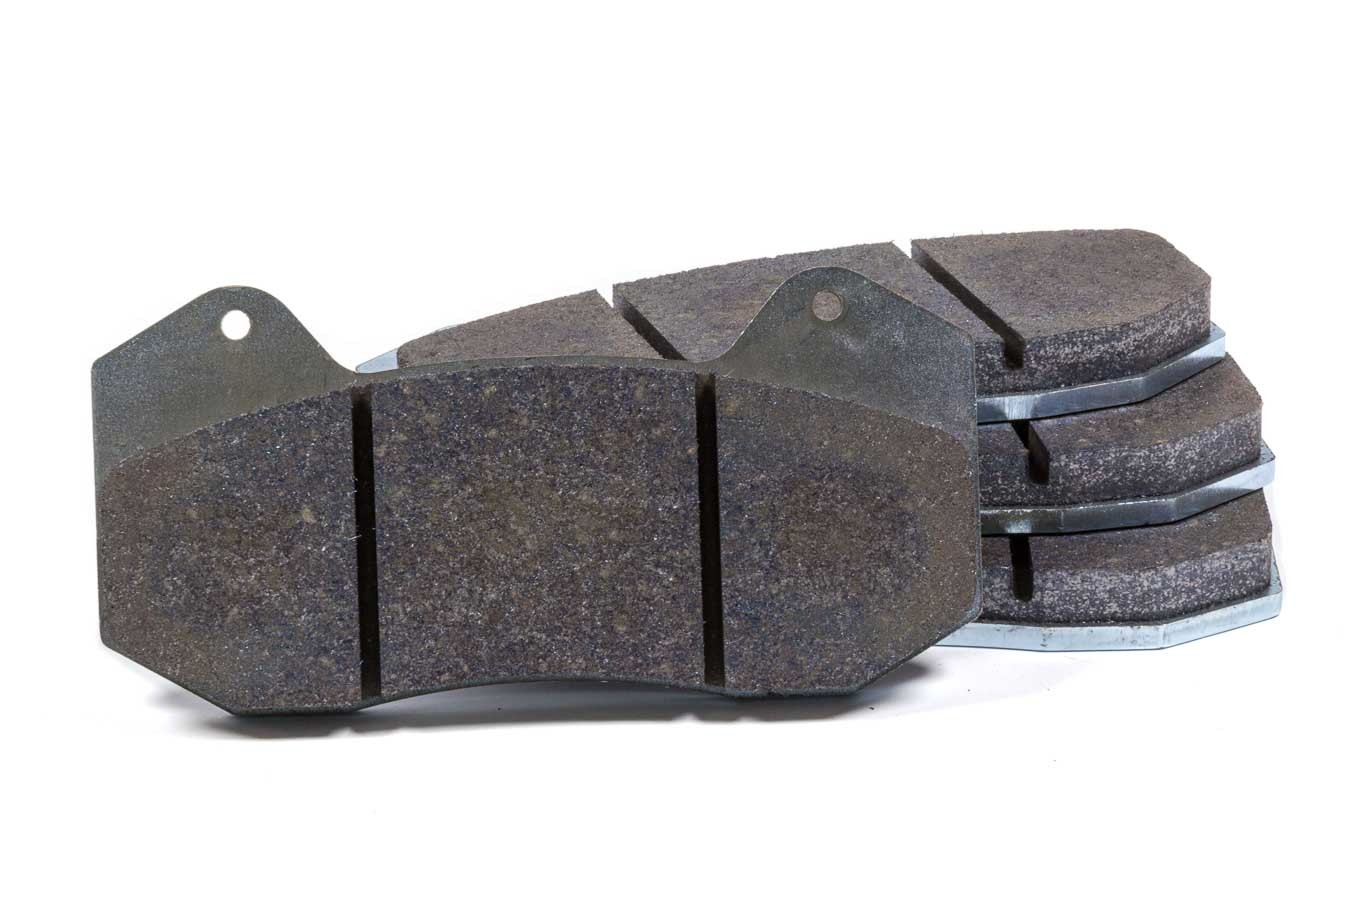 Wilwood 150-12760K Brake Pads, BP-40 Compound, Very High Friction, High Temperature, Dynapro Caliper, Set of 4